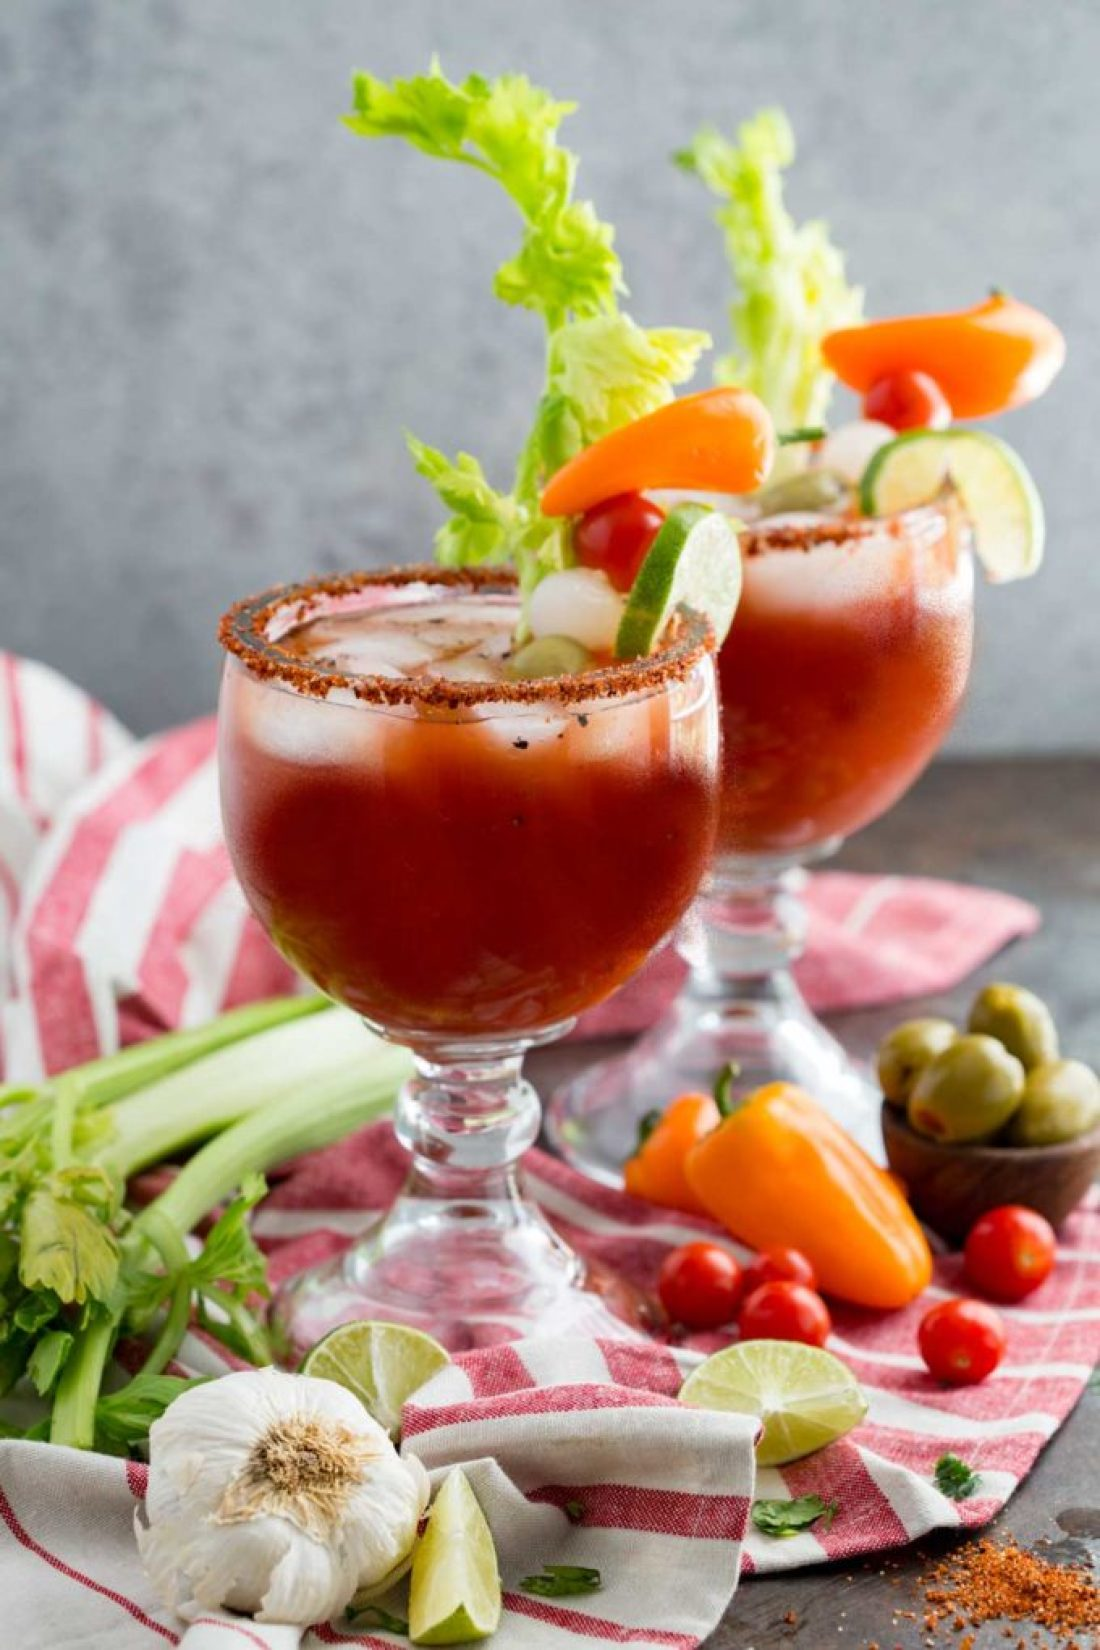 How to Make Micheladas: Or, not so bloody mary. This is a spicy tomato based mocktail with bold flavors, and a fun kick perfect for eating alfresco with friends!